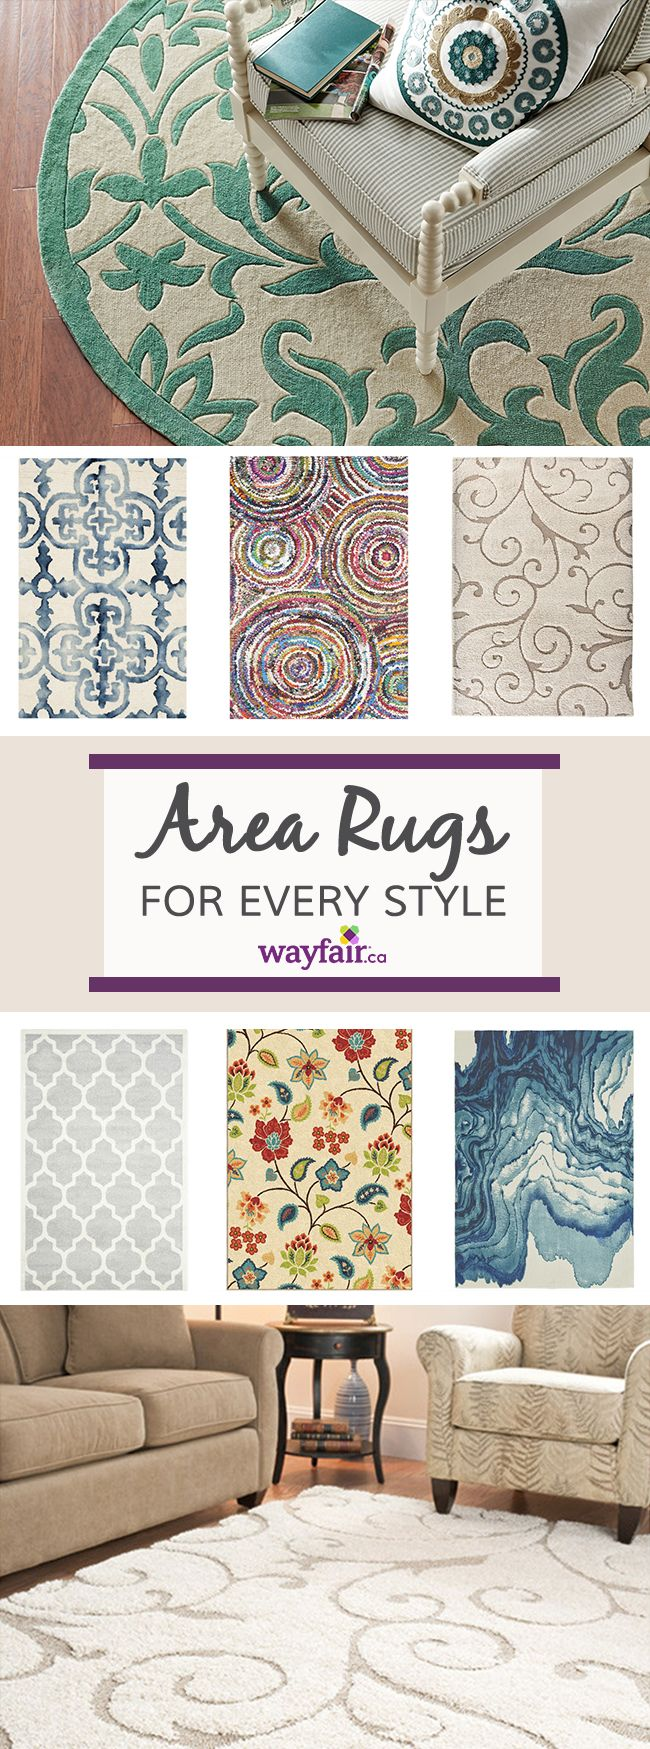 Determine what kind of area rug would fit your room best! Rectangular rugs can be used in all rooms, while round rugs are most popular in entryways or dining rooms. Runners often line hallways, staircases, and kitchens for added style. Visit Wayfair and sign up today to get access to exclusive deals everyday up to 70% off. Free shipping on all orders over $75.